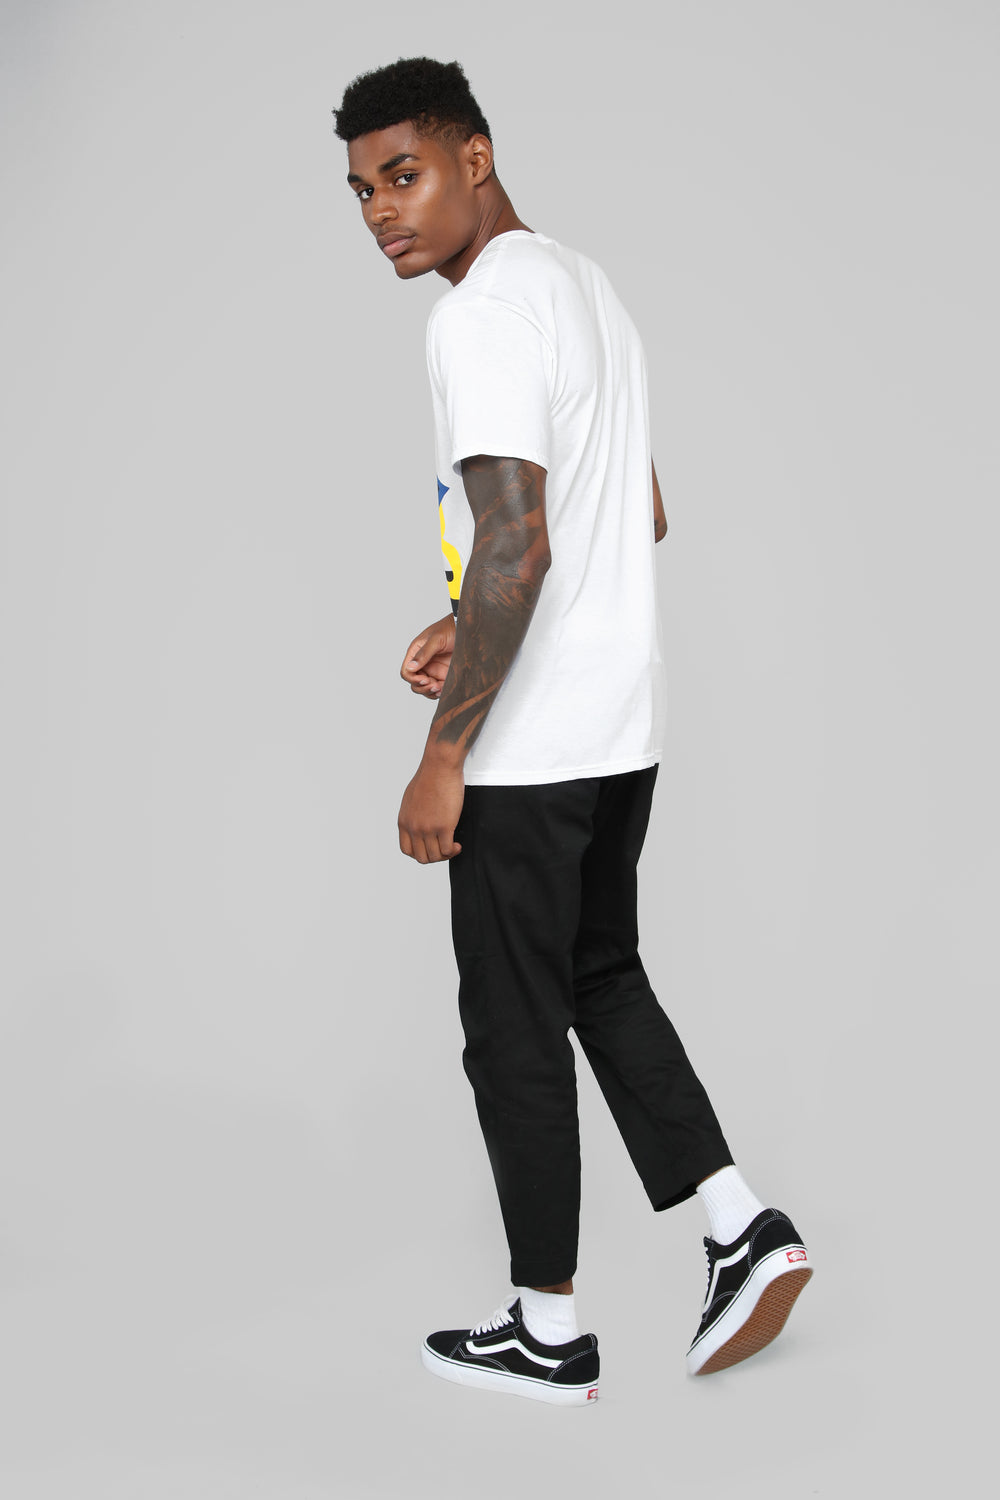 All City Comp Short Sleeve Tee - White